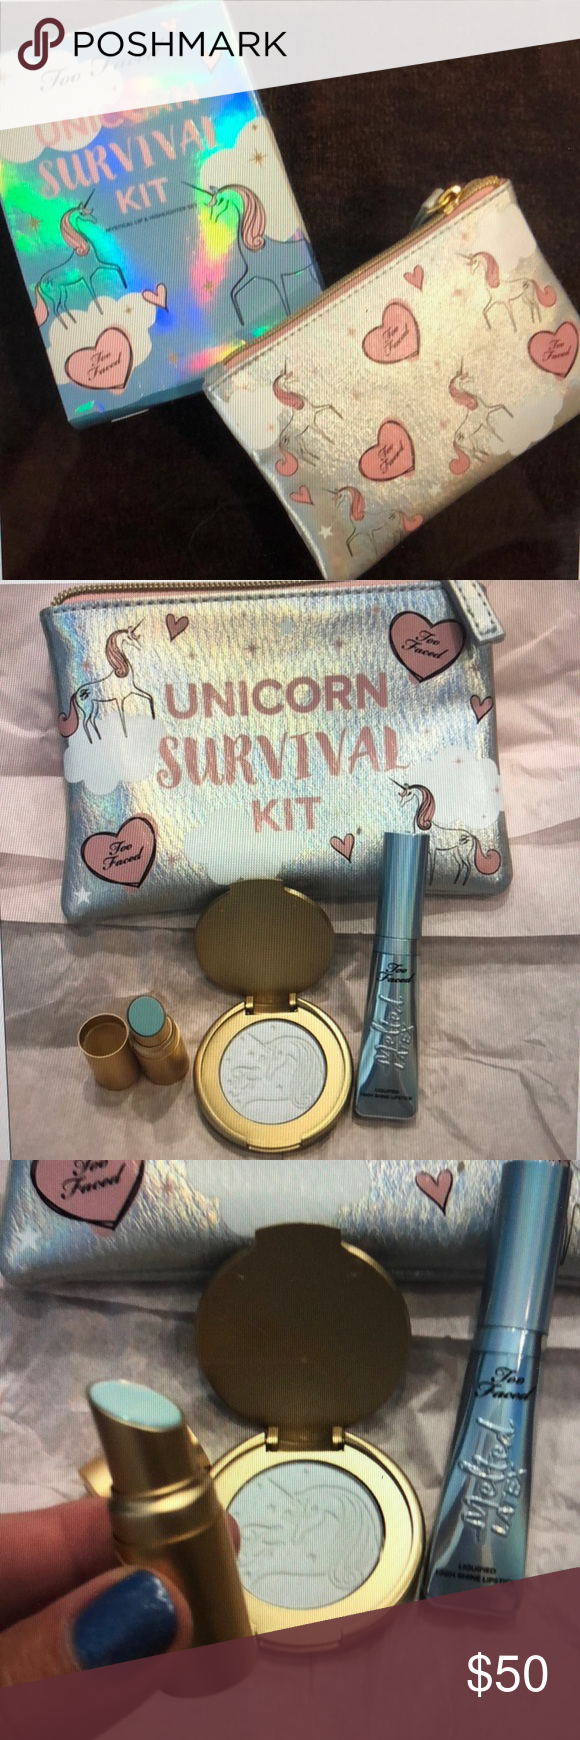 Too Faced Unicorn Survival Kit NWT Clothes design